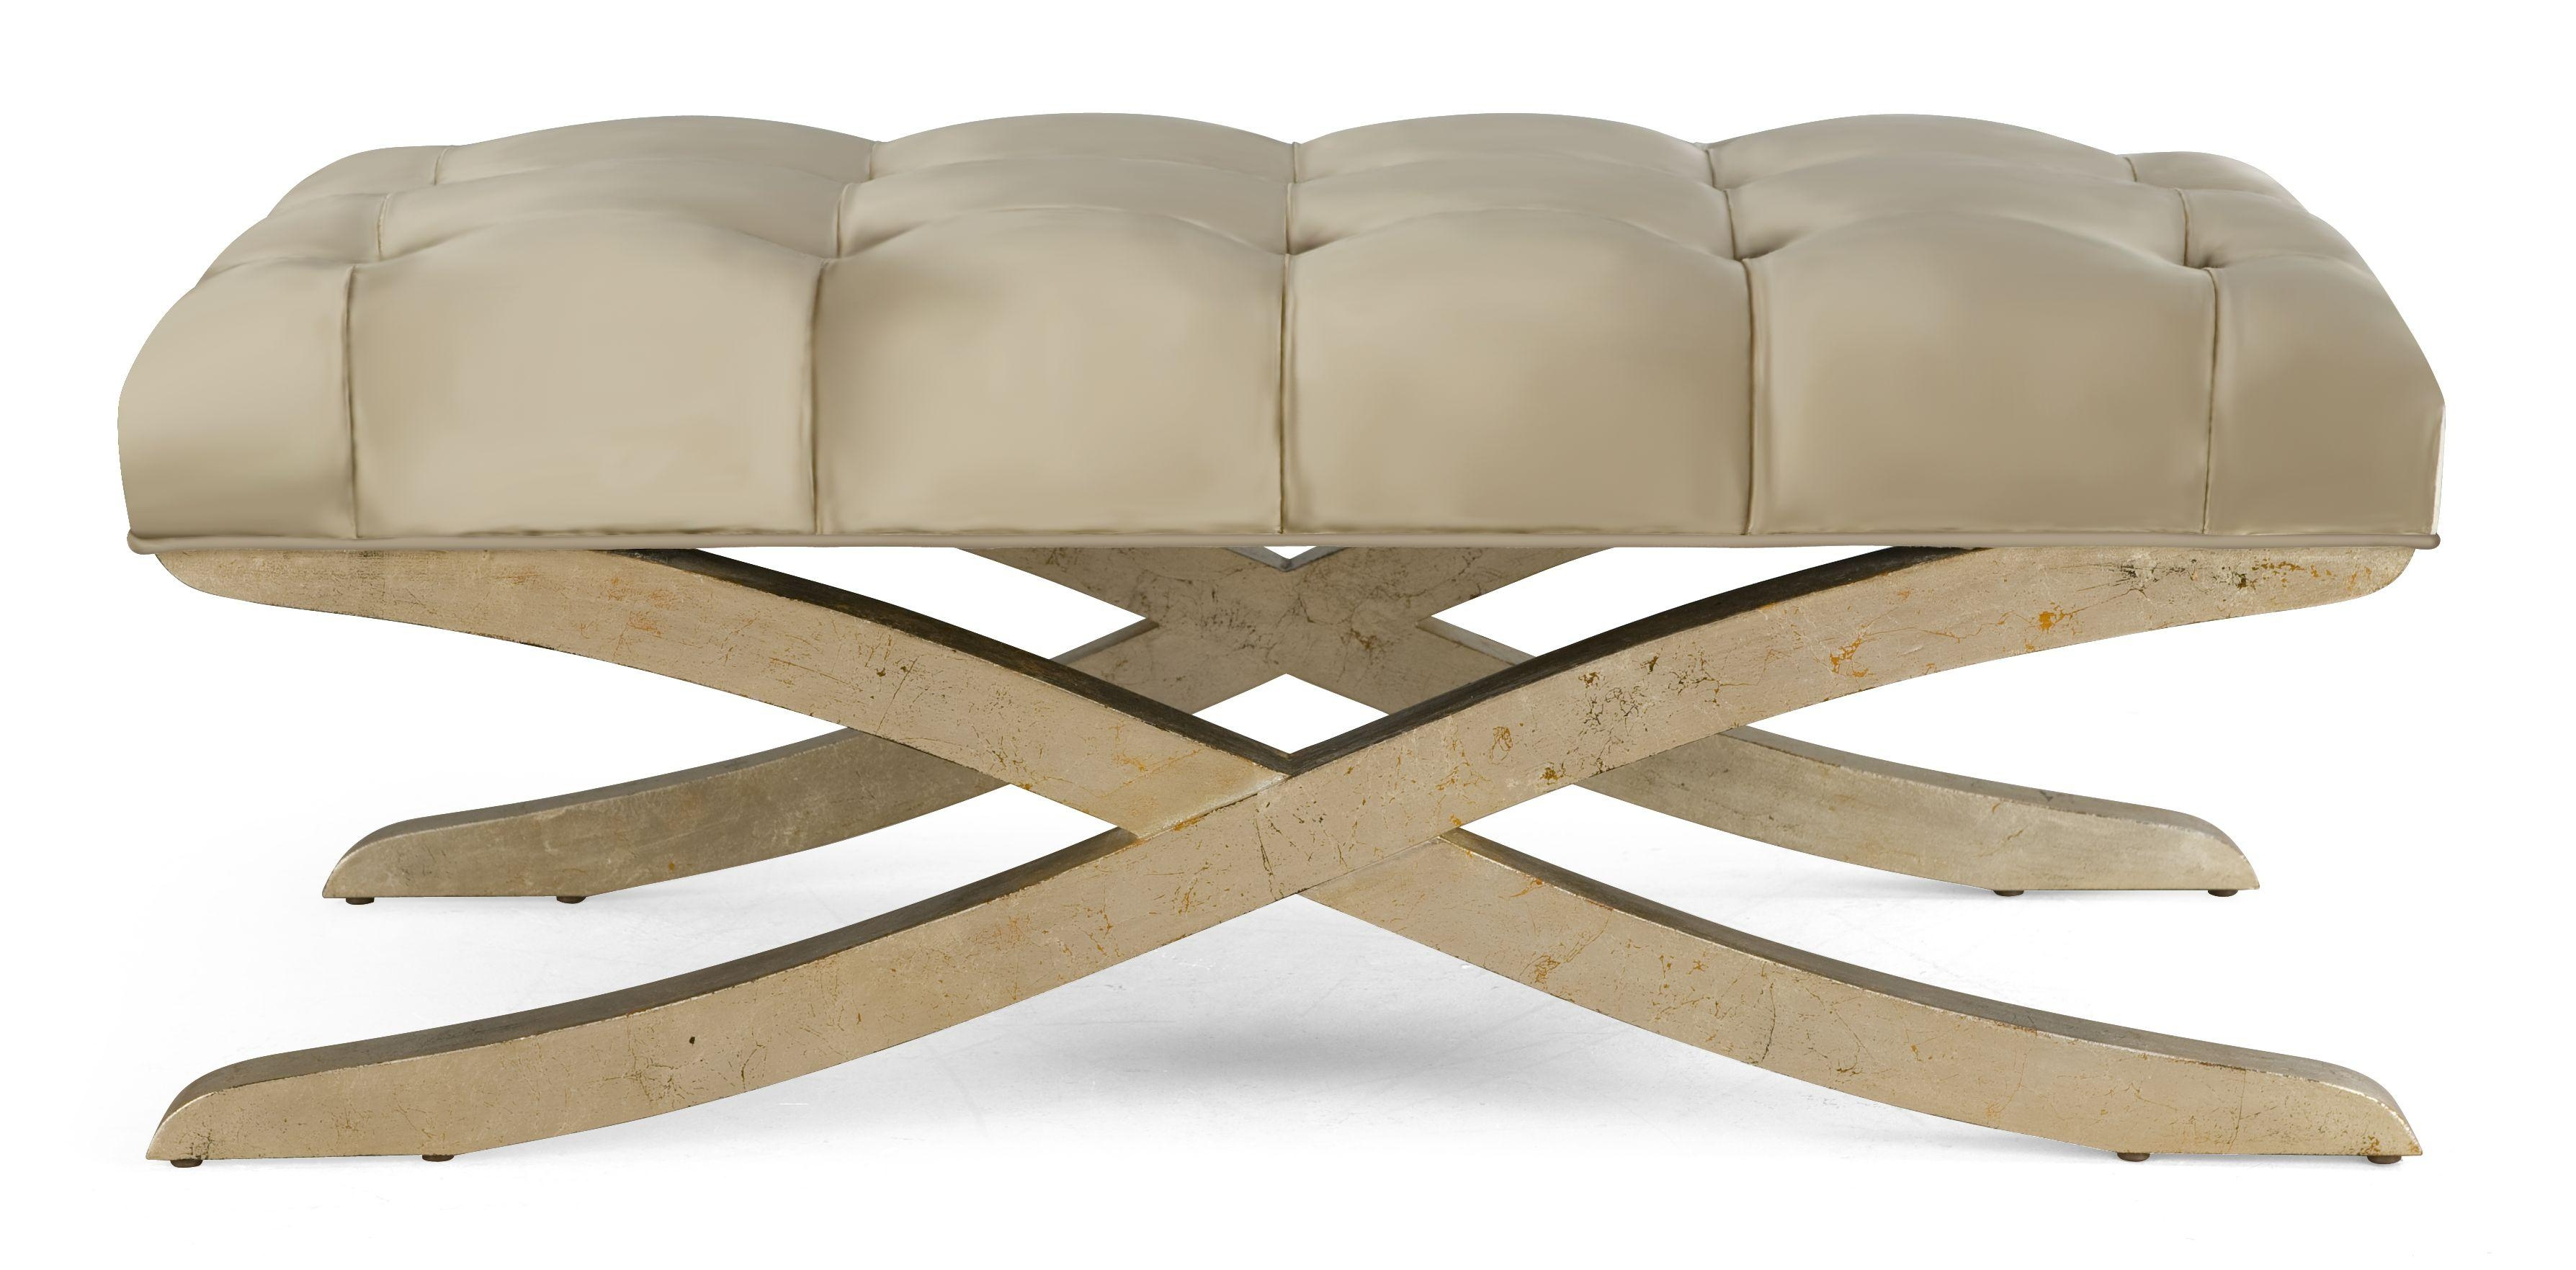 March | 2014 | Barrymore Blog For Coco Chanel Sofas (Image 18 of 20)